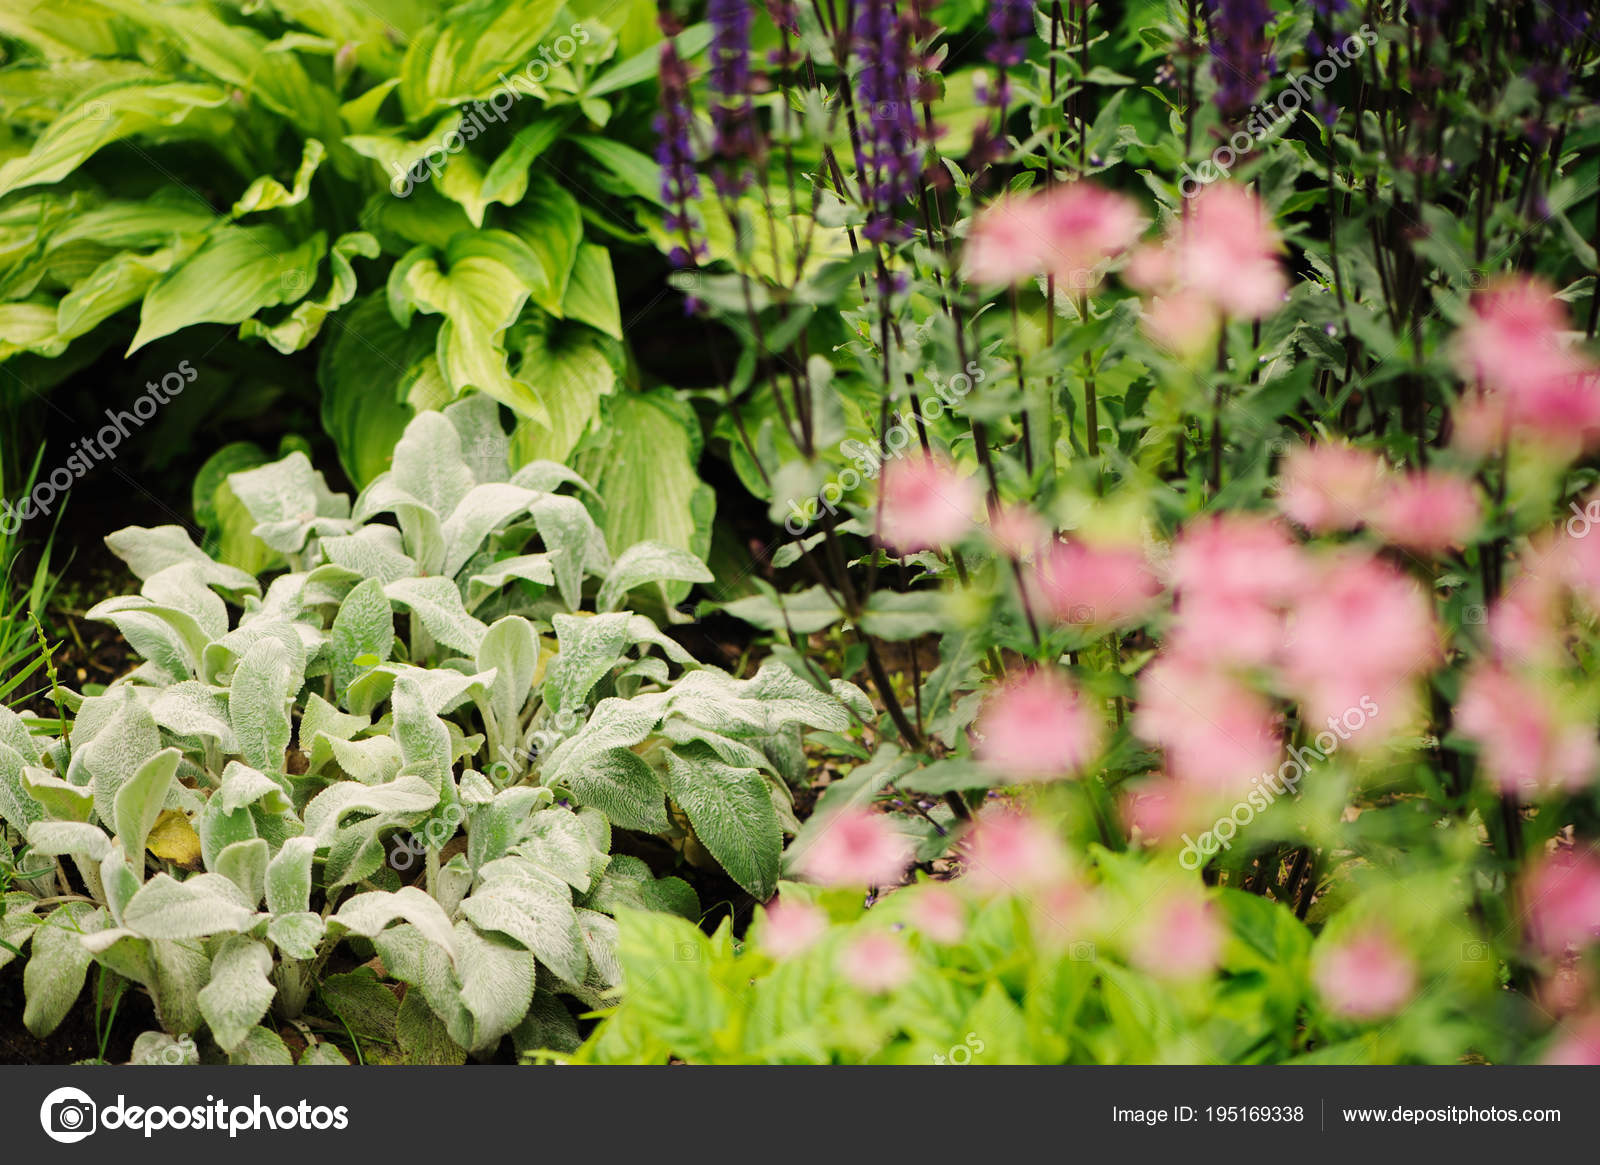 Stachys lamb ears planted flowerbed other blooming perennials summer stachys lamb ears planted flowerbed other blooming perennials summer garden stock photo mightylinksfo